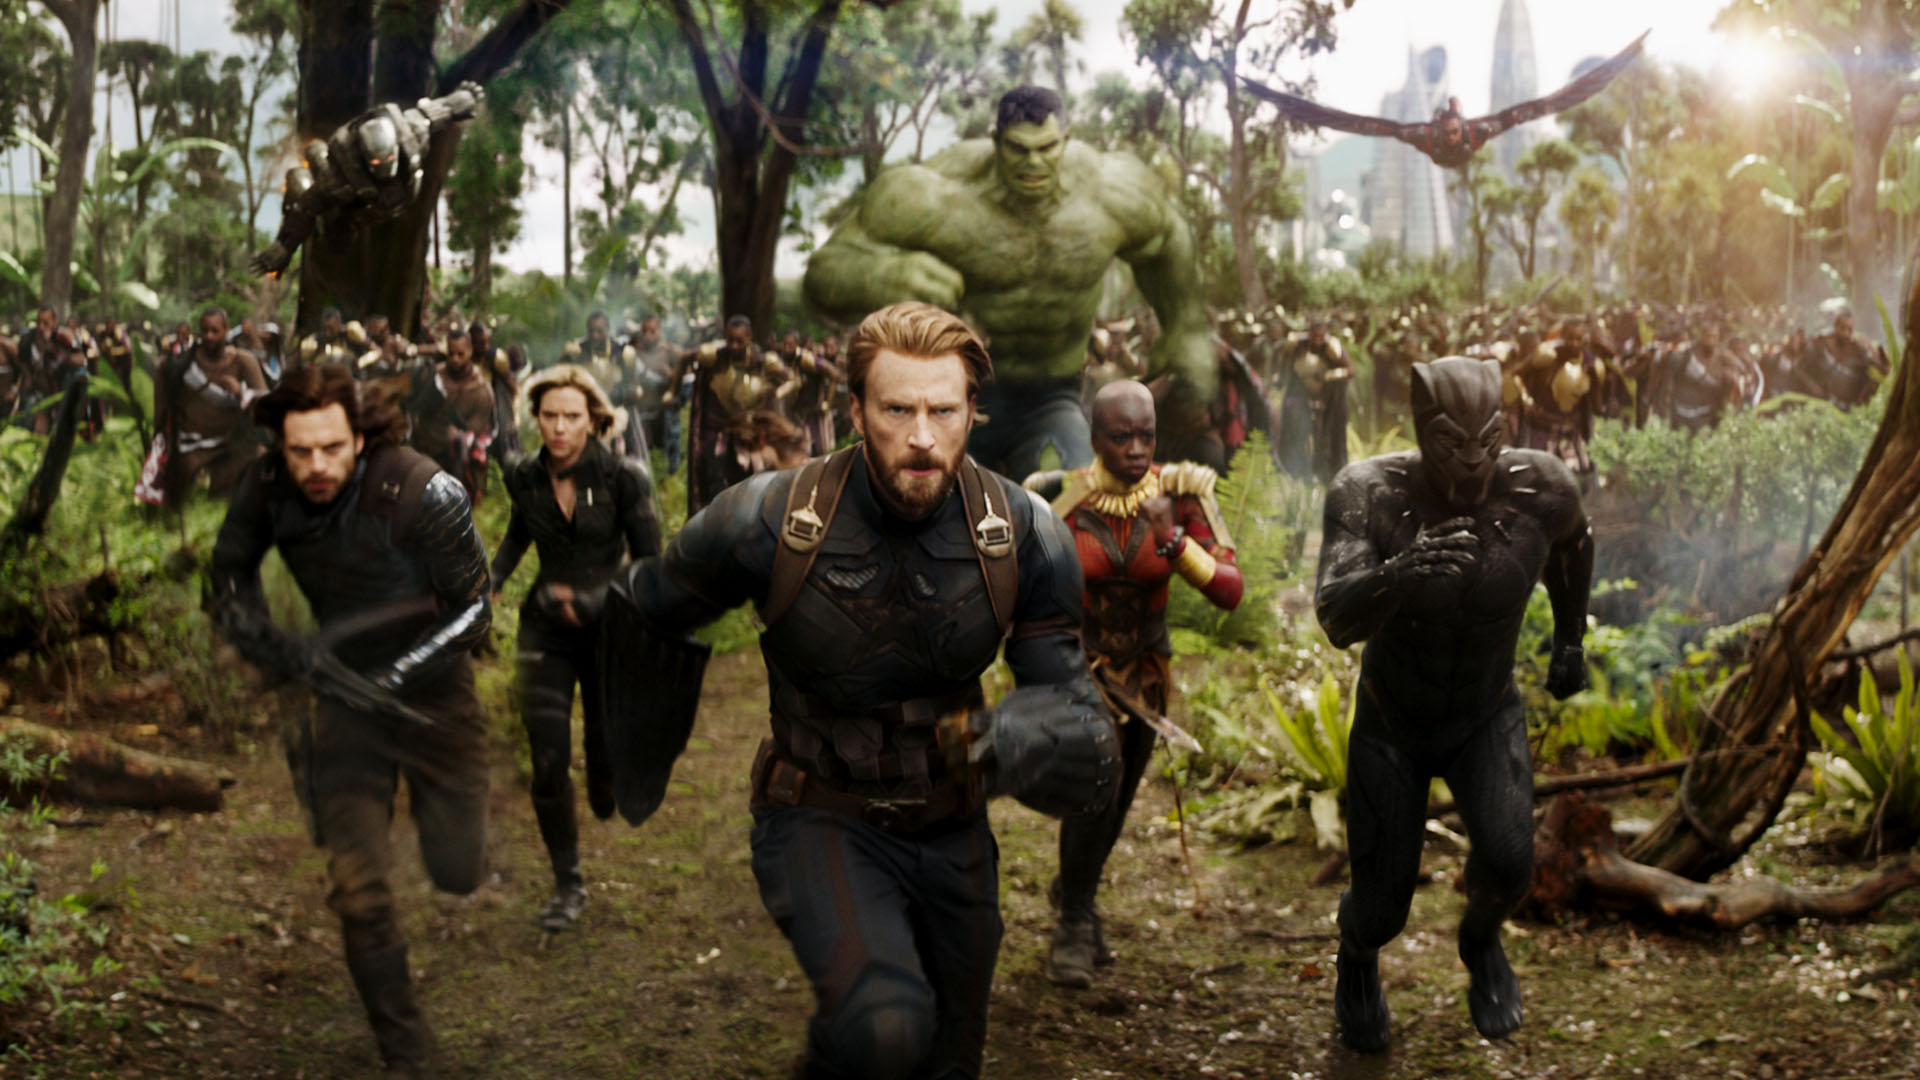 Avengers Endgame scene cut out - directors issue statement